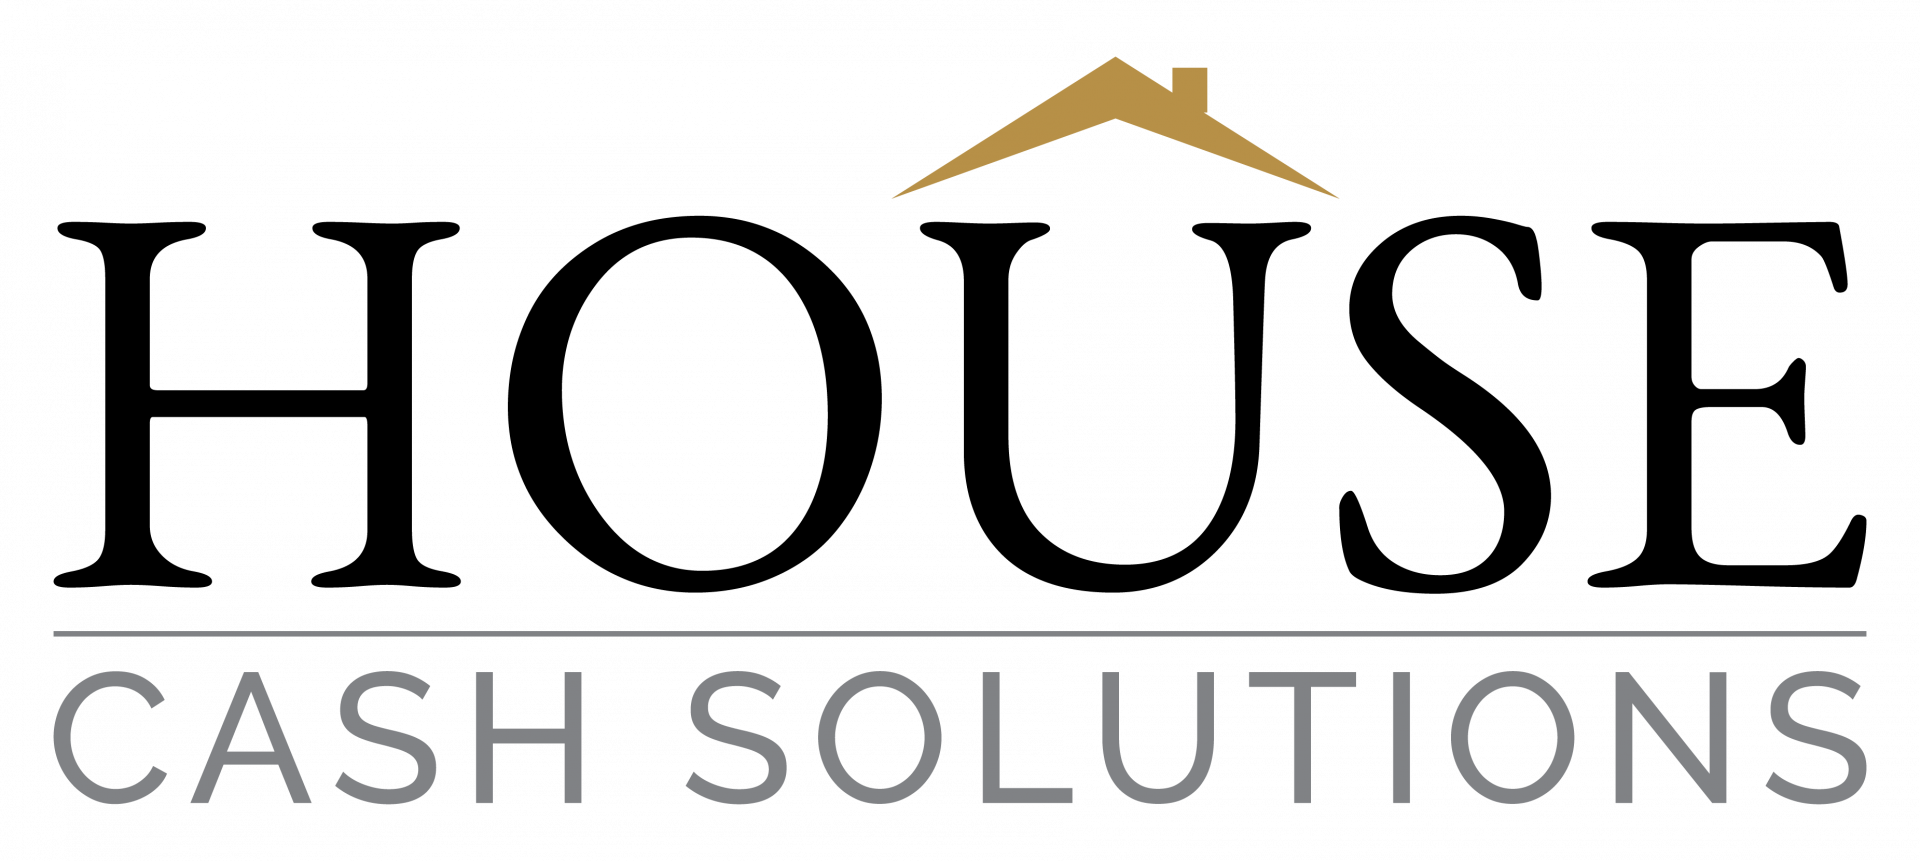 House Cash Solutions  logo